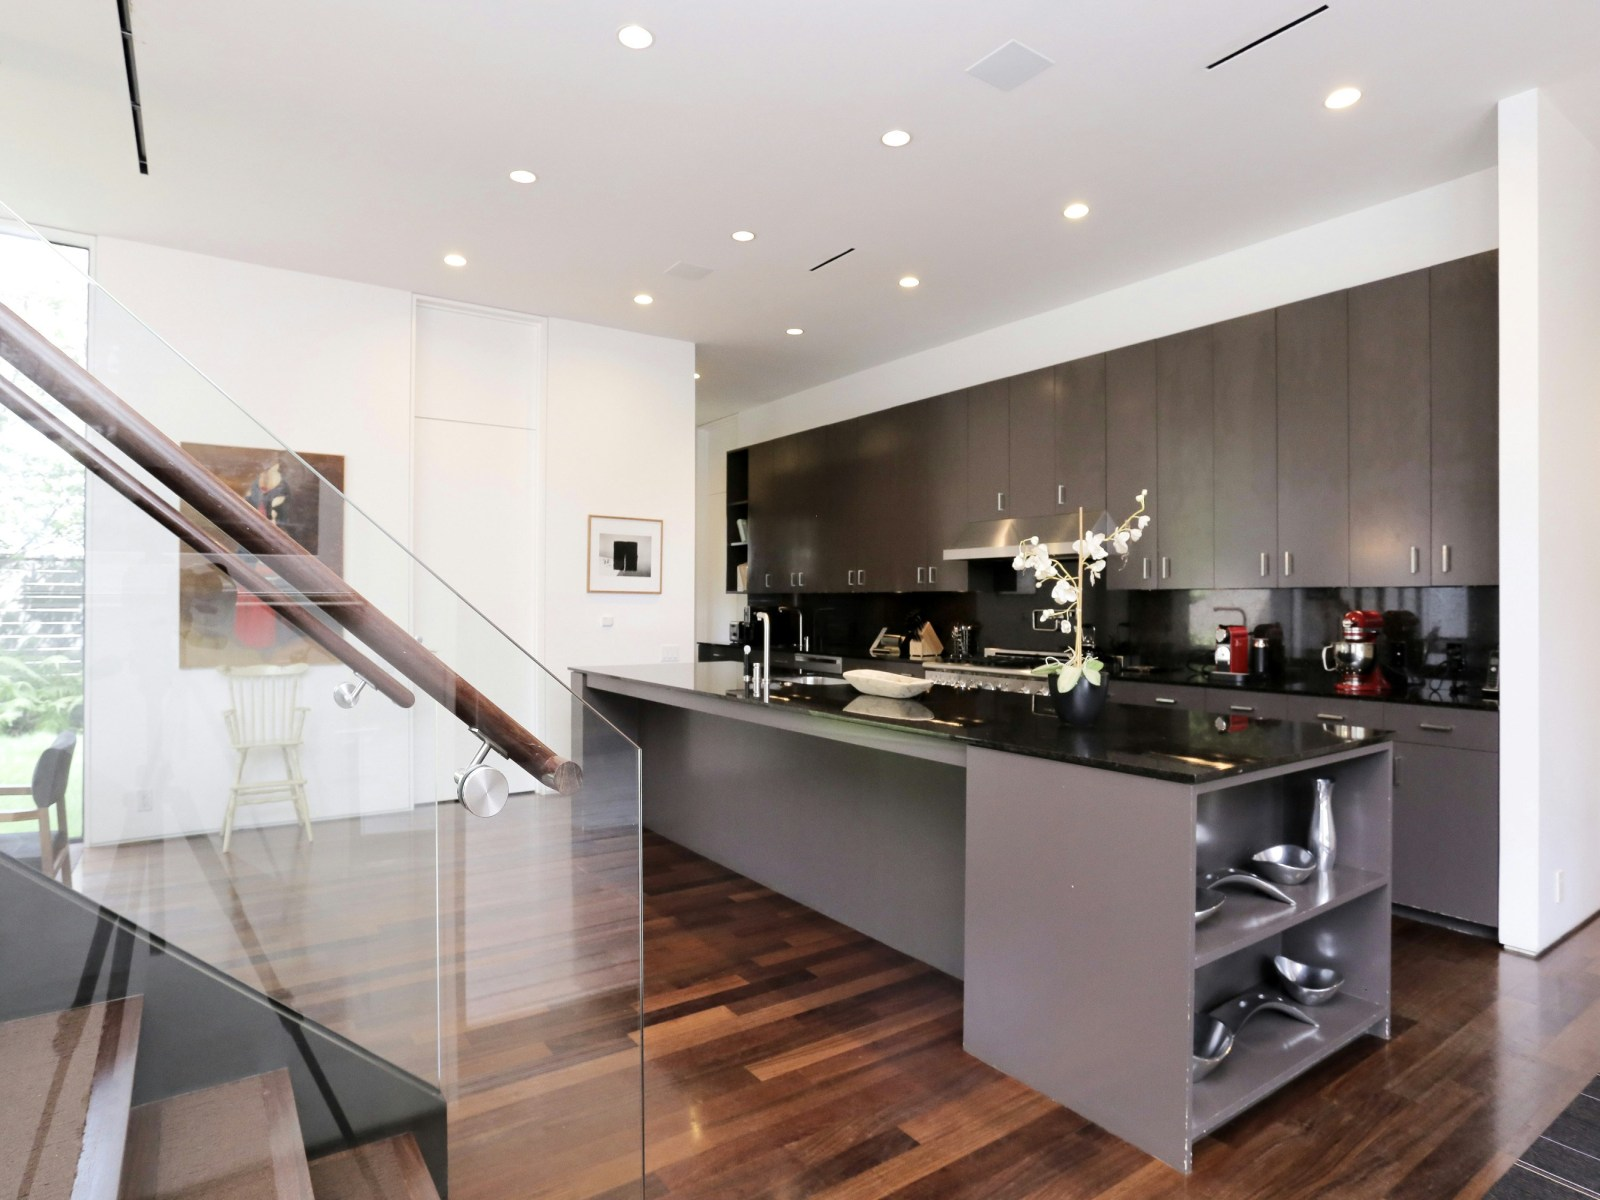 Luxury Grayscale Kitchen - A home with formidable architecture and a light interior